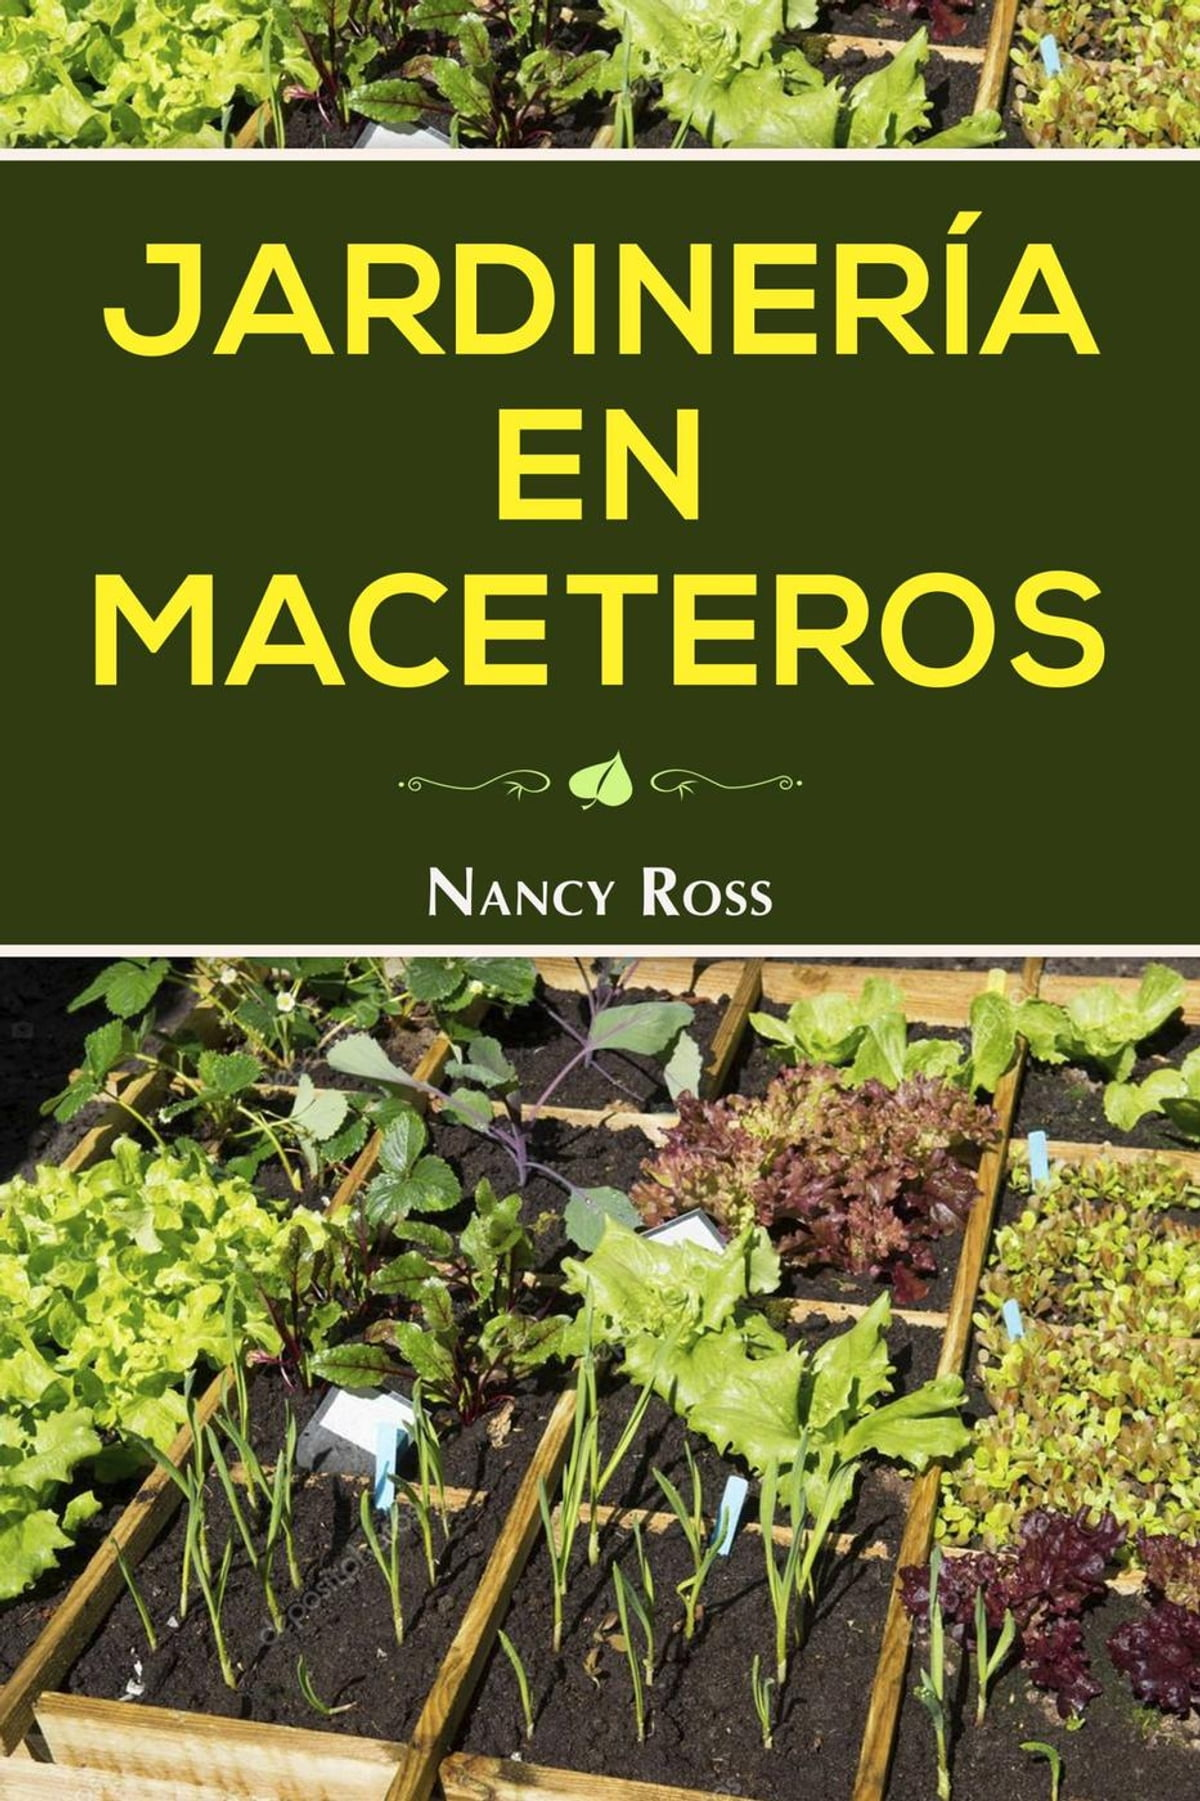 Jardinería en Maceteros eBook de Nancy Ross - 9781507191477 | Rakuten Kobo